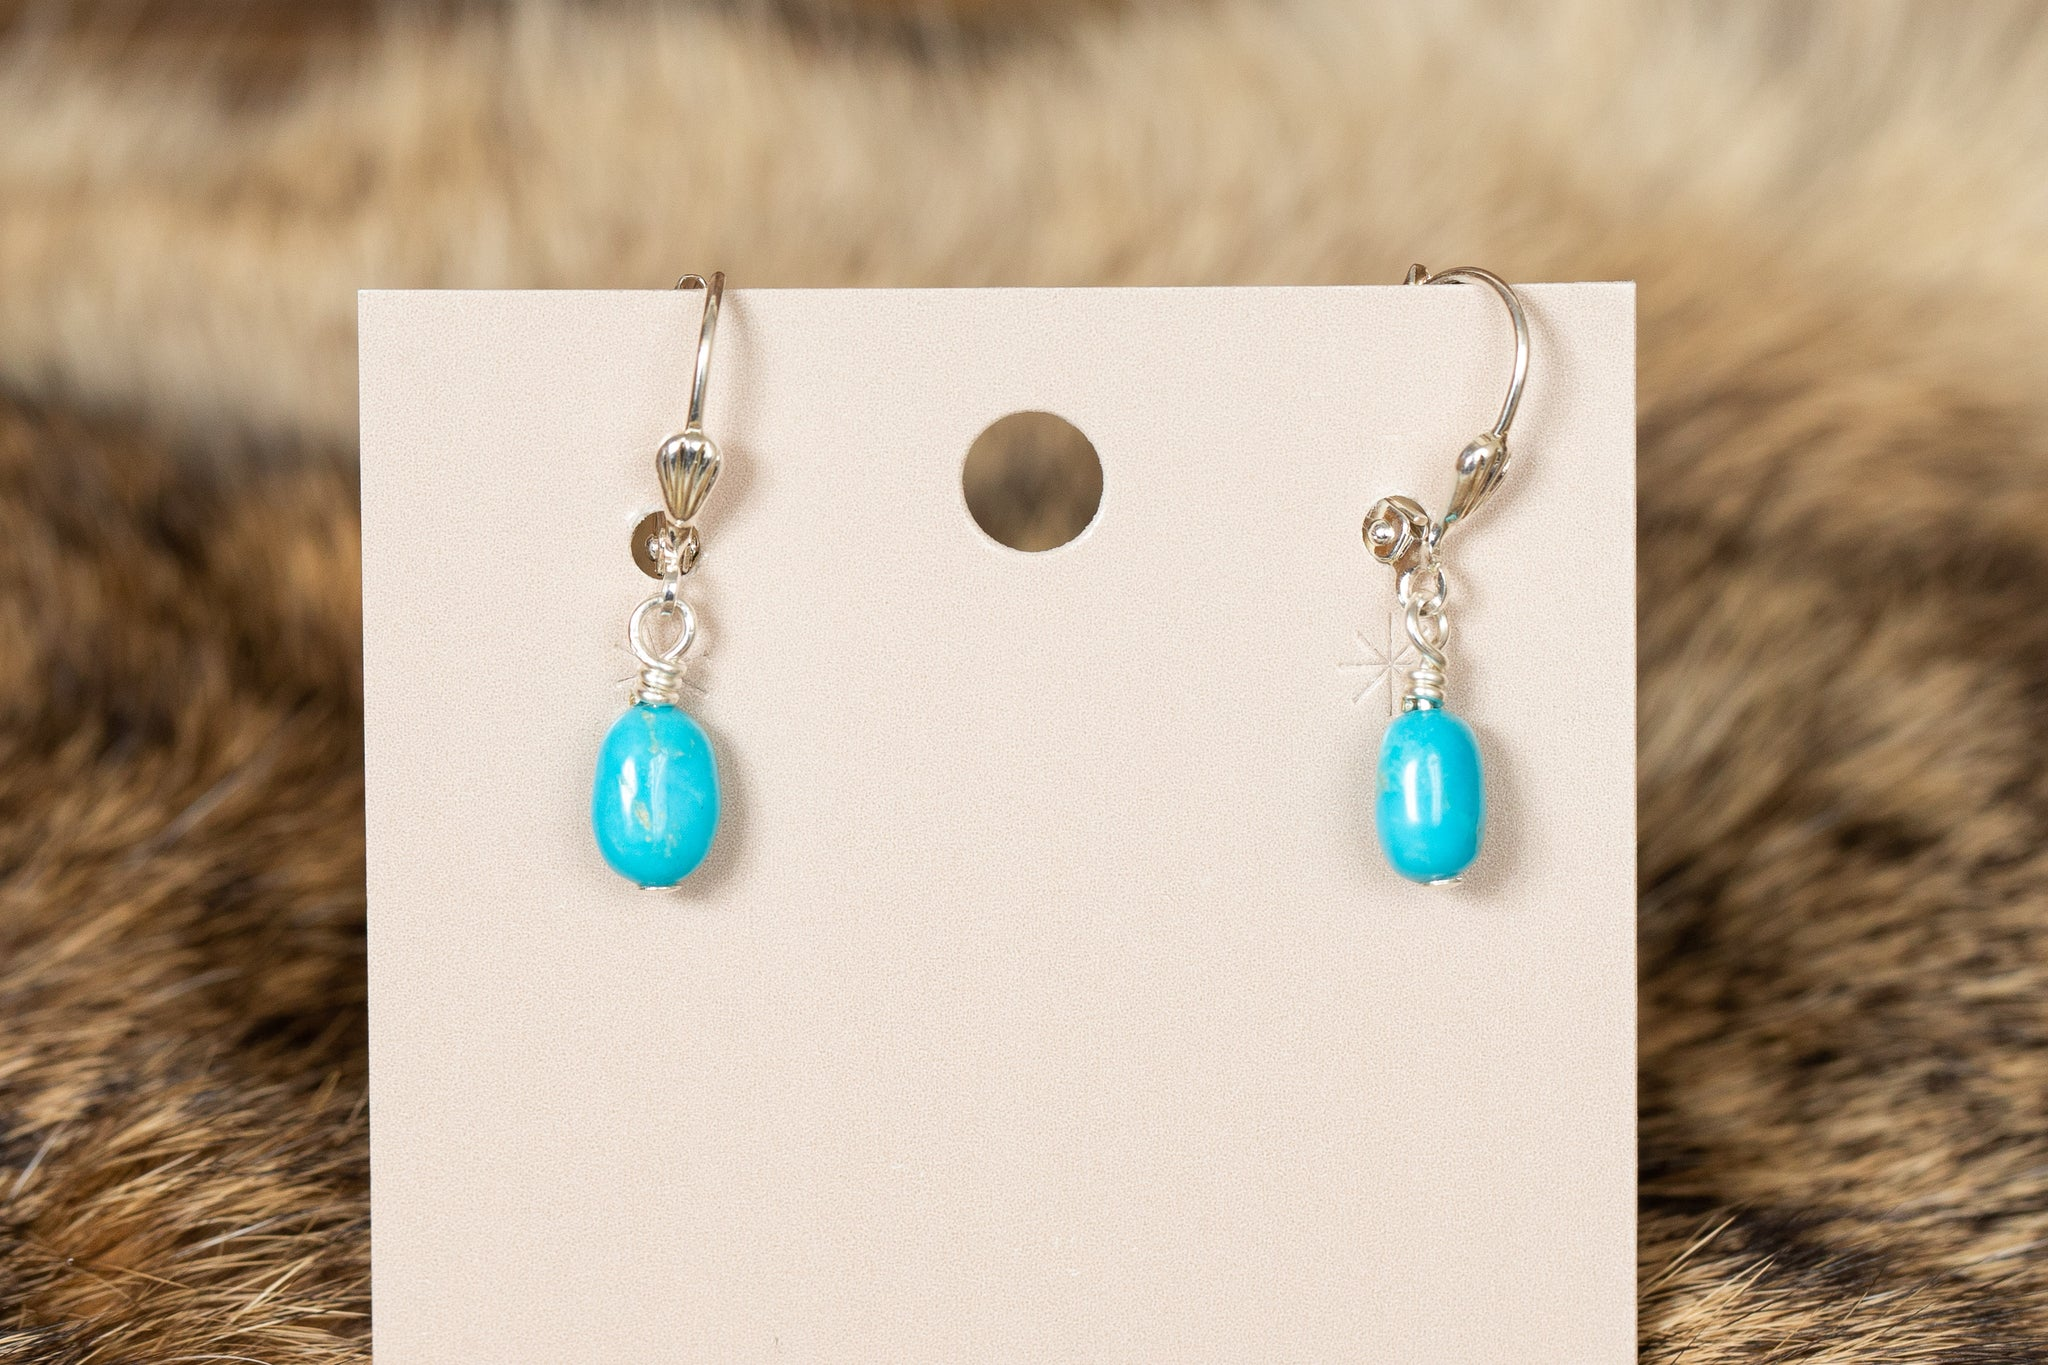 Turquoise Stone Earrings with Clip